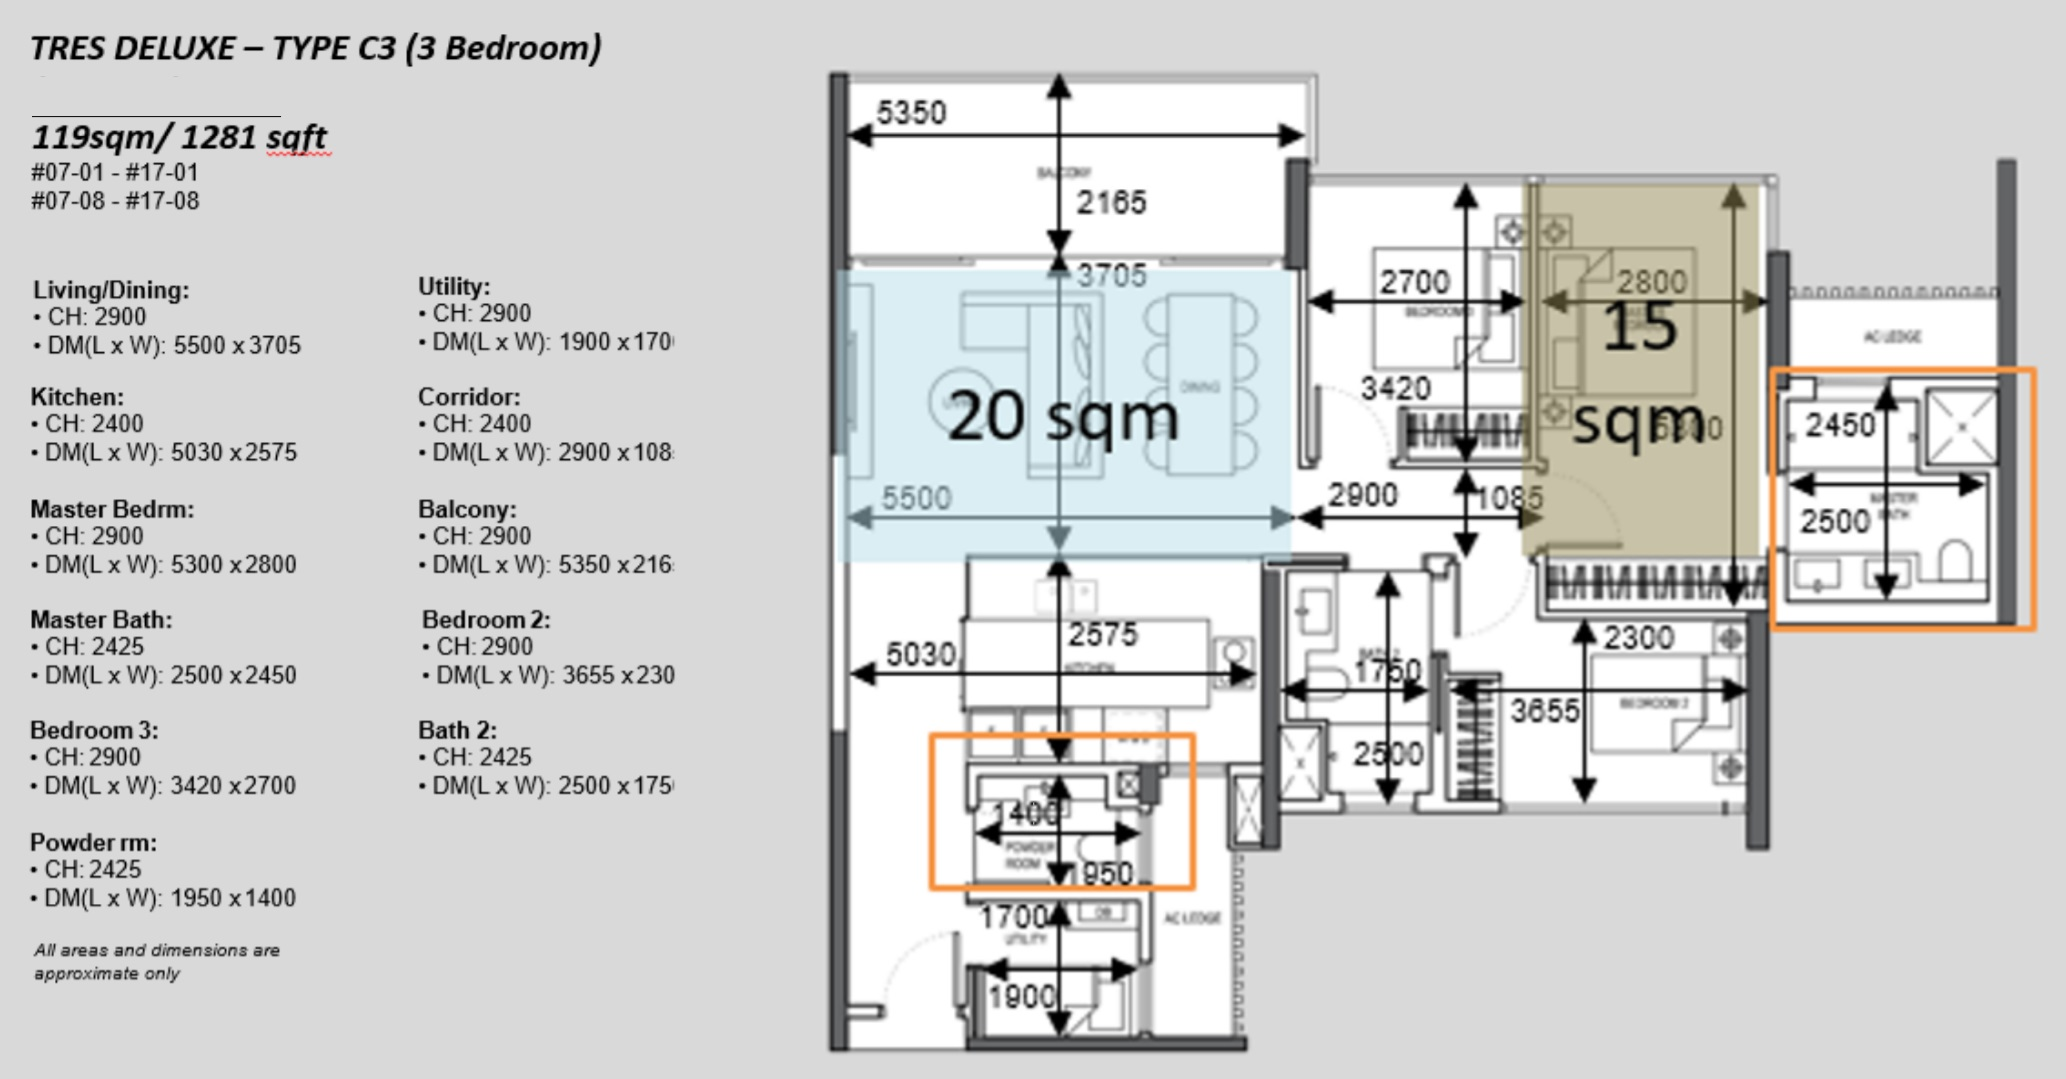 The Atelier condo floorplan 3 bedroom Type C3